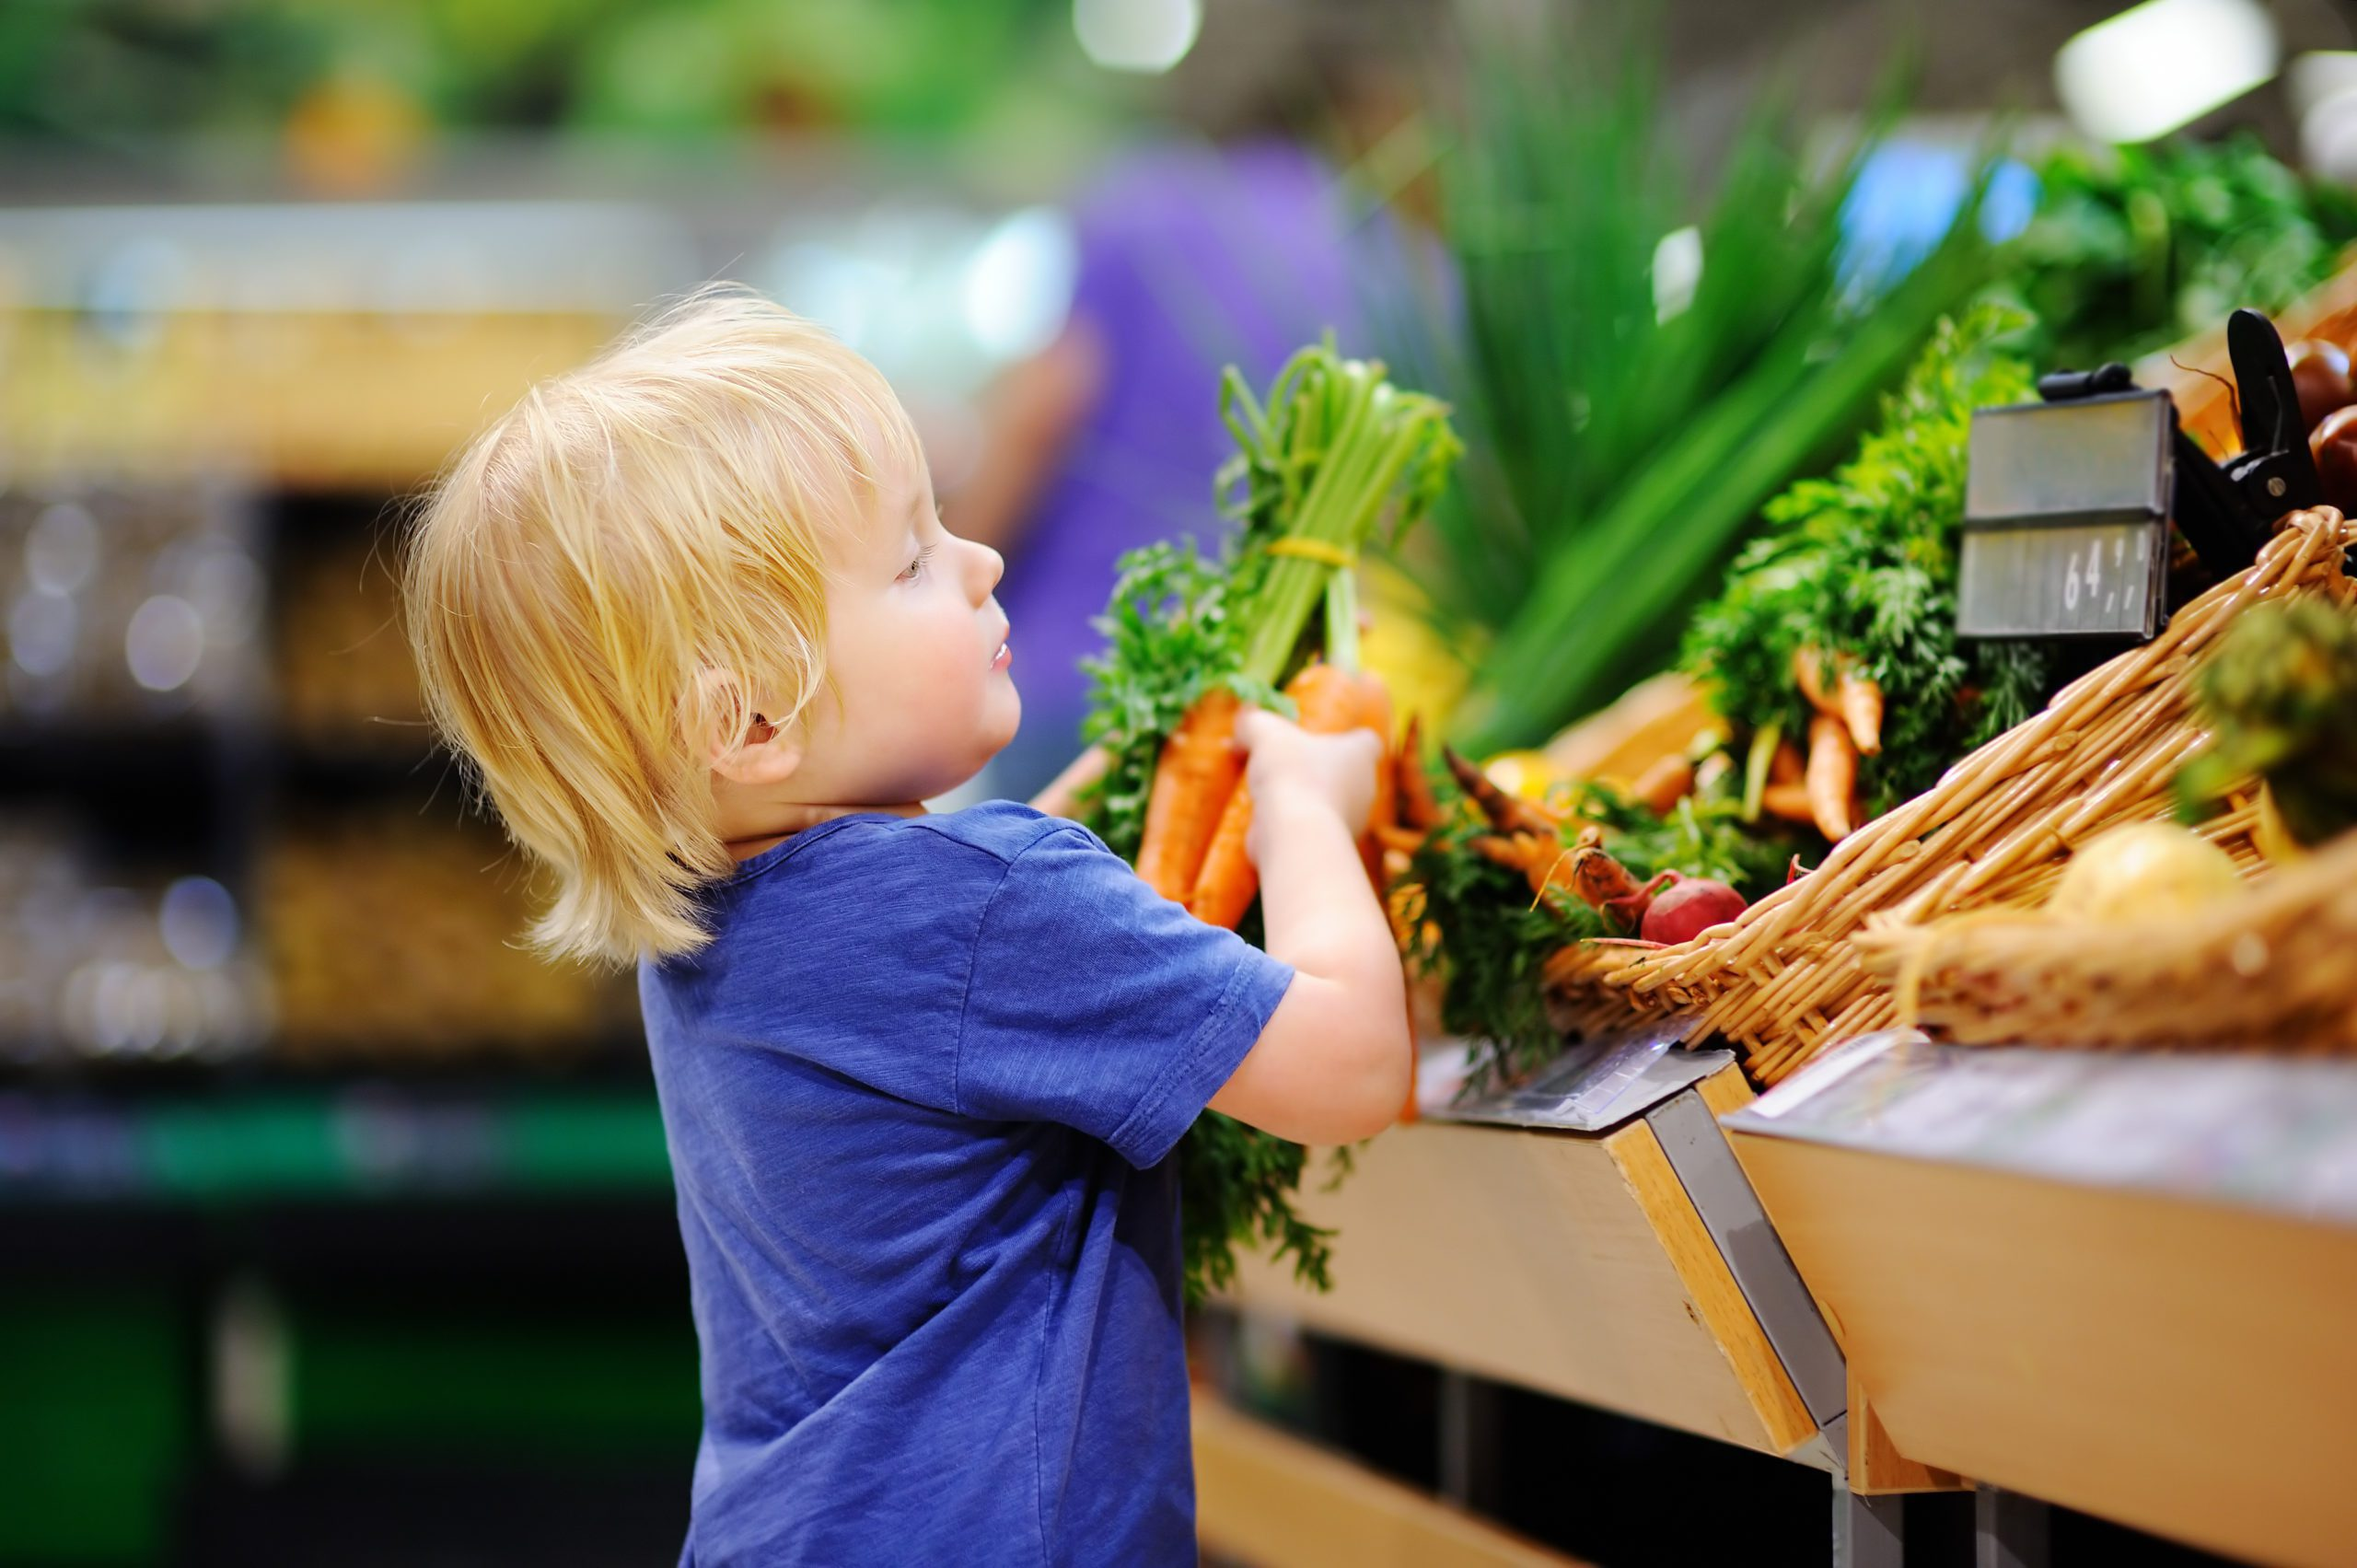 5 Tips on How to Raise a Healthy Toddler